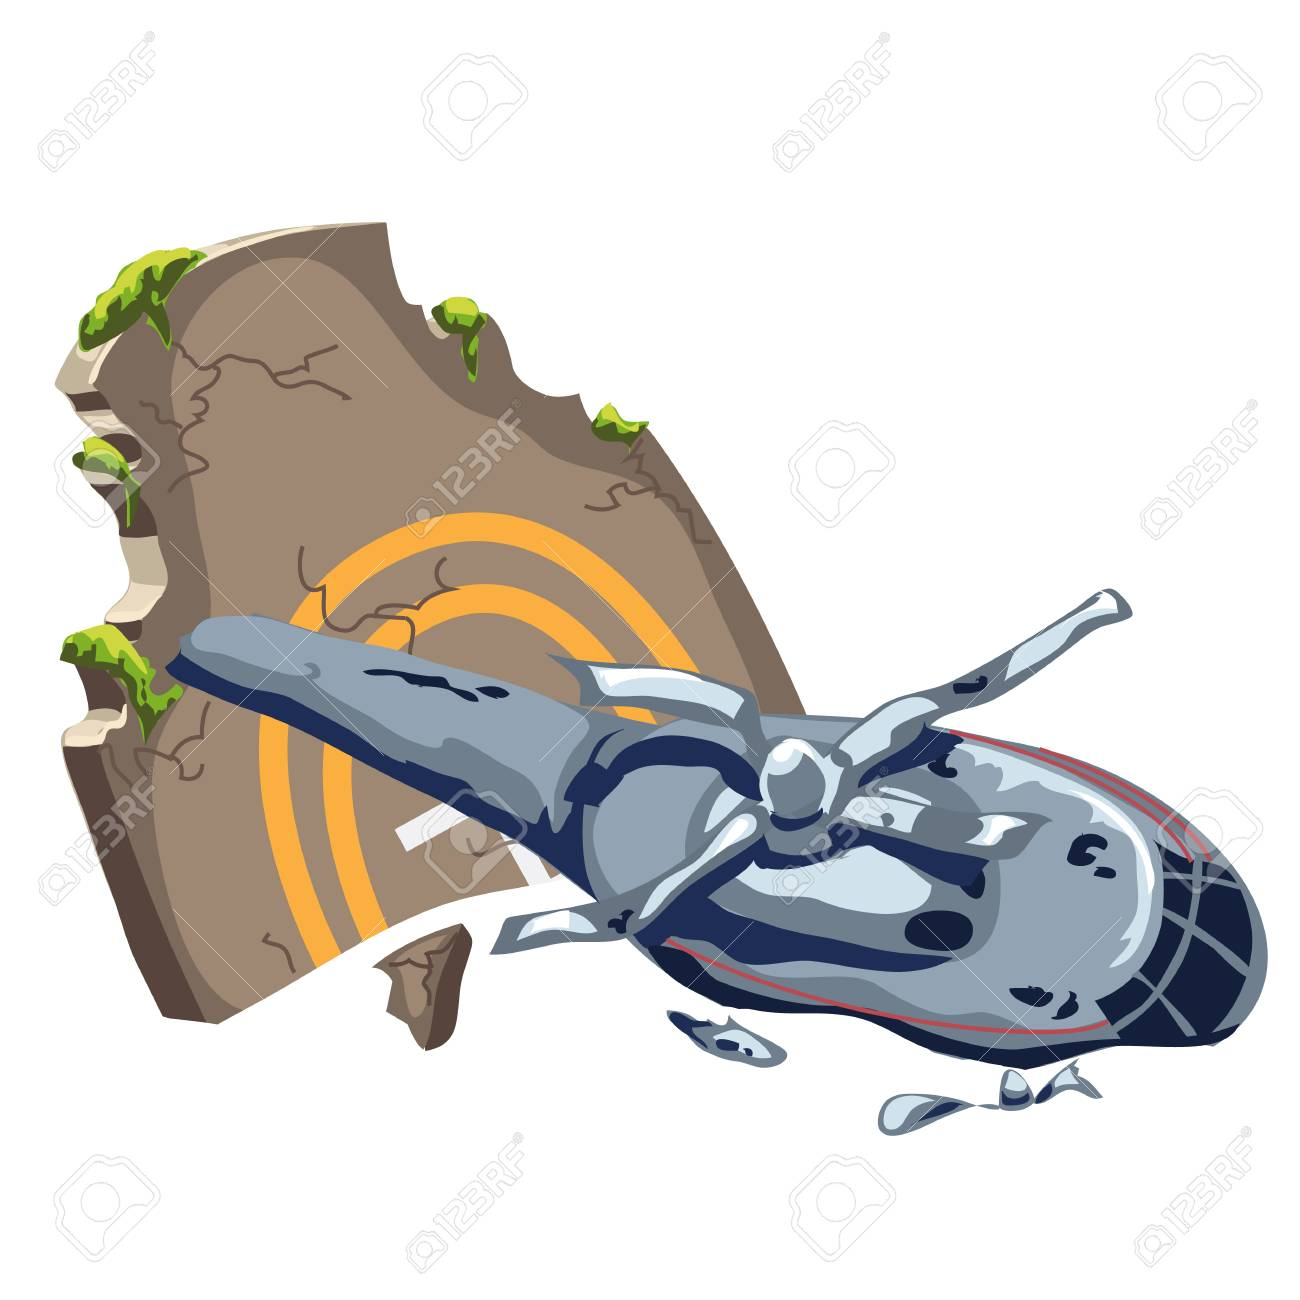 Helicopter crash clipart clip free library Helicopter clipart helicopter crash - 53 transparent clip ... clip free library